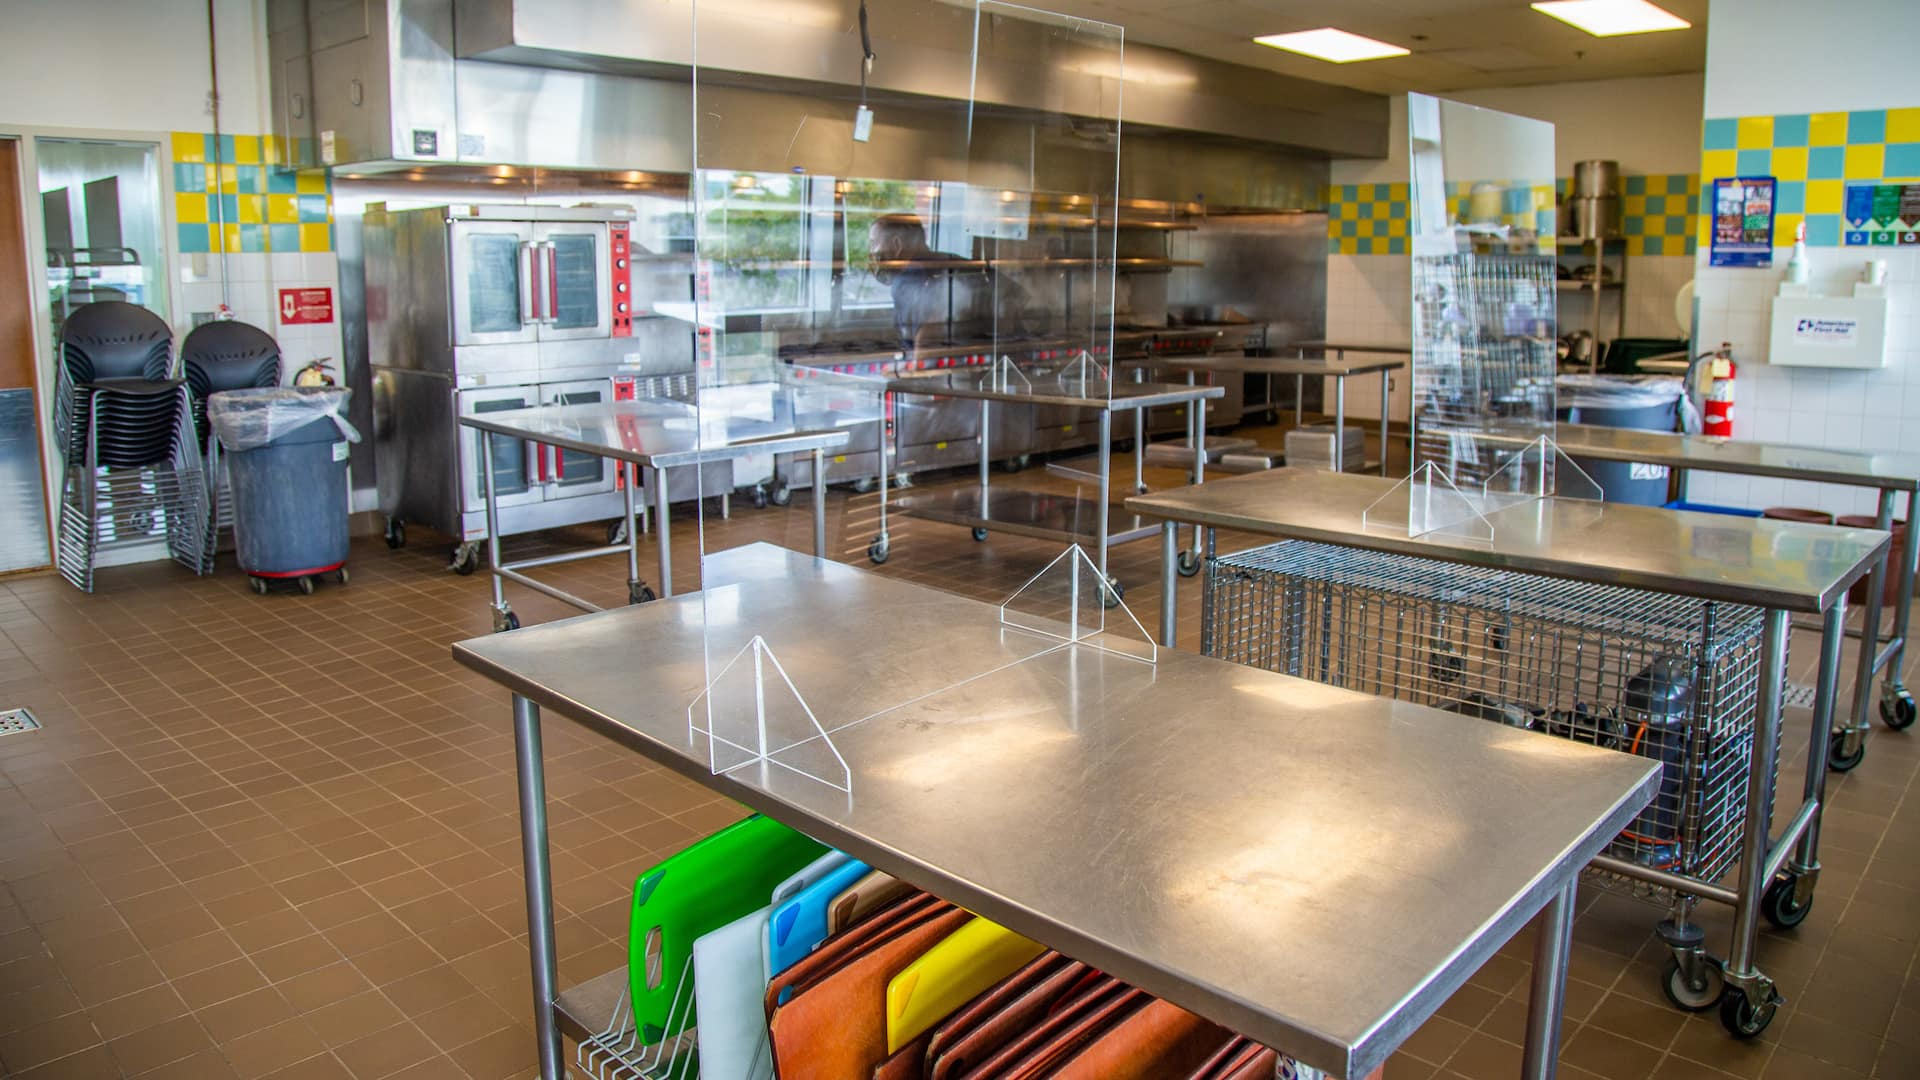 Lab Setup of the JWU Providence Culinary Reopening